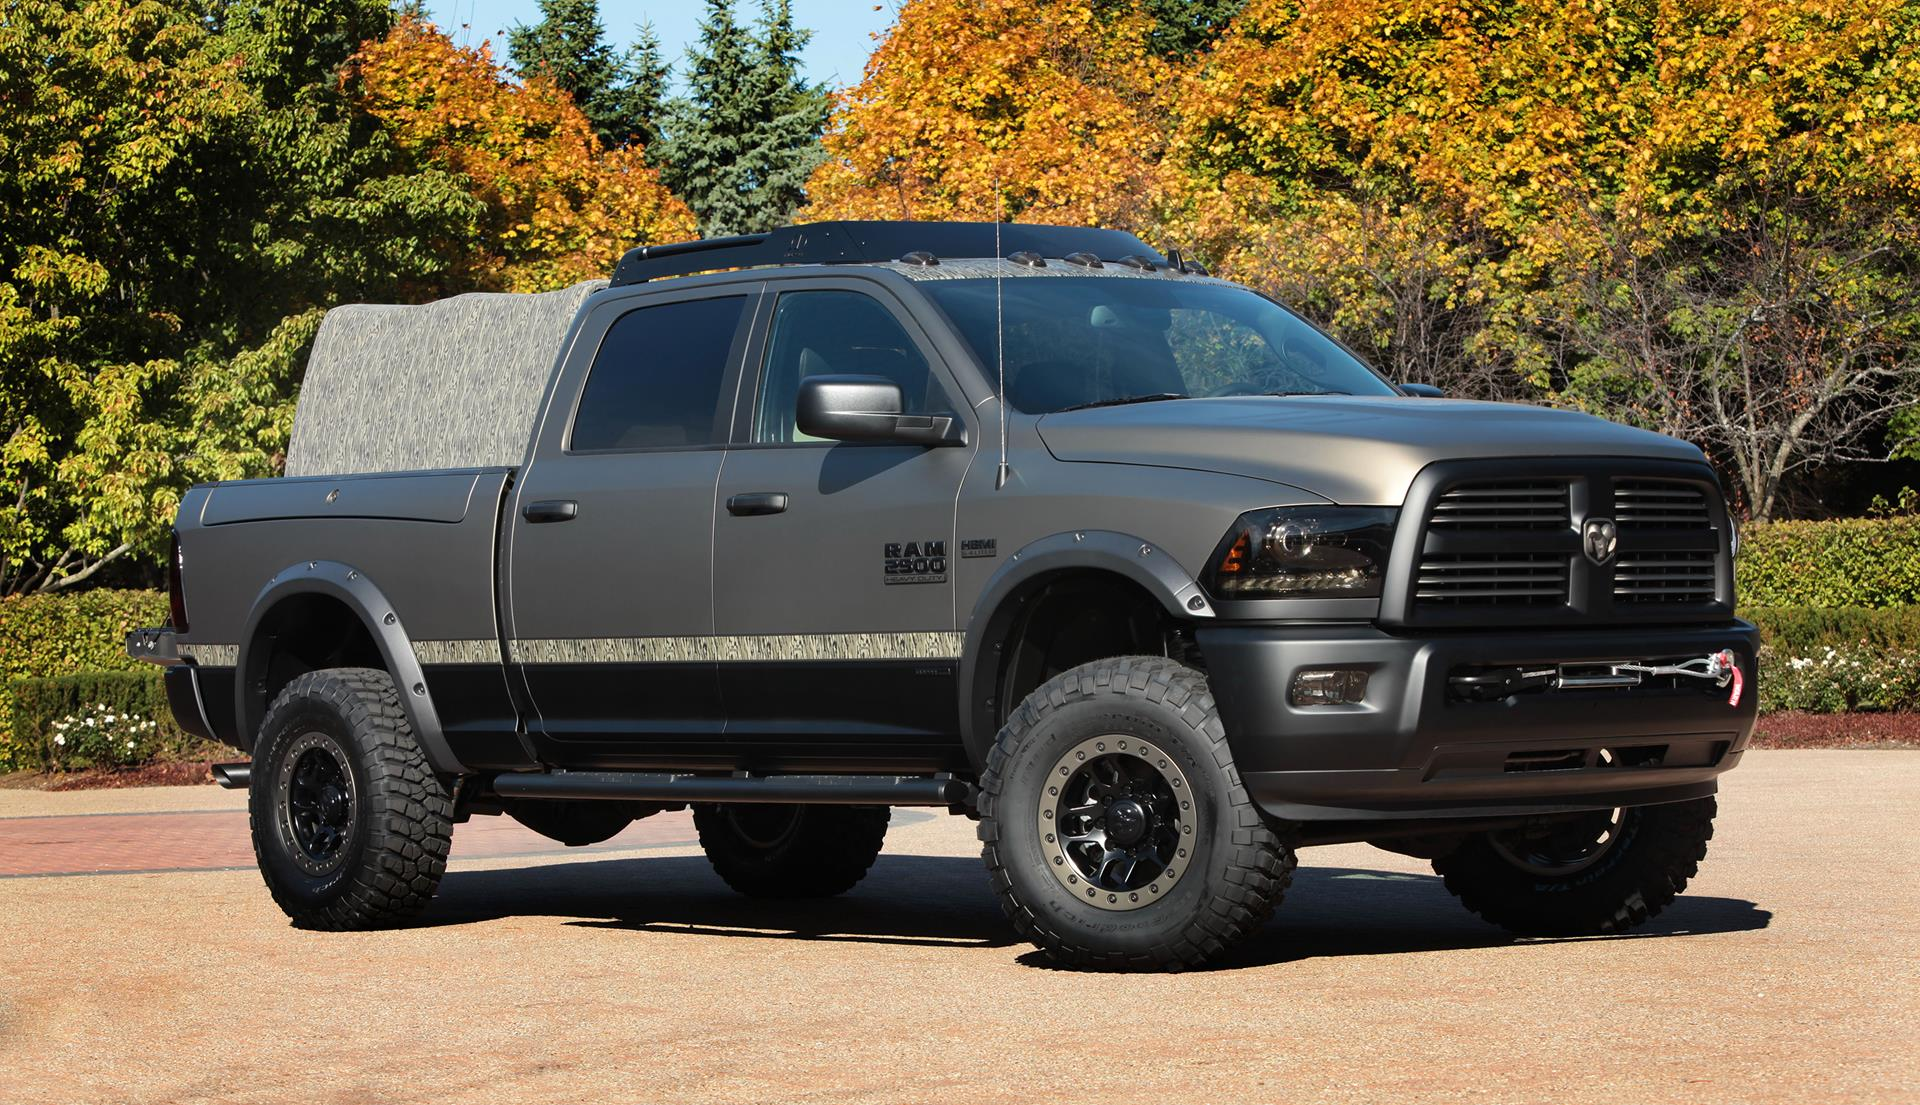 2014 ram 2500 outdoorsman pictures news research pricing. Black Bedroom Furniture Sets. Home Design Ideas